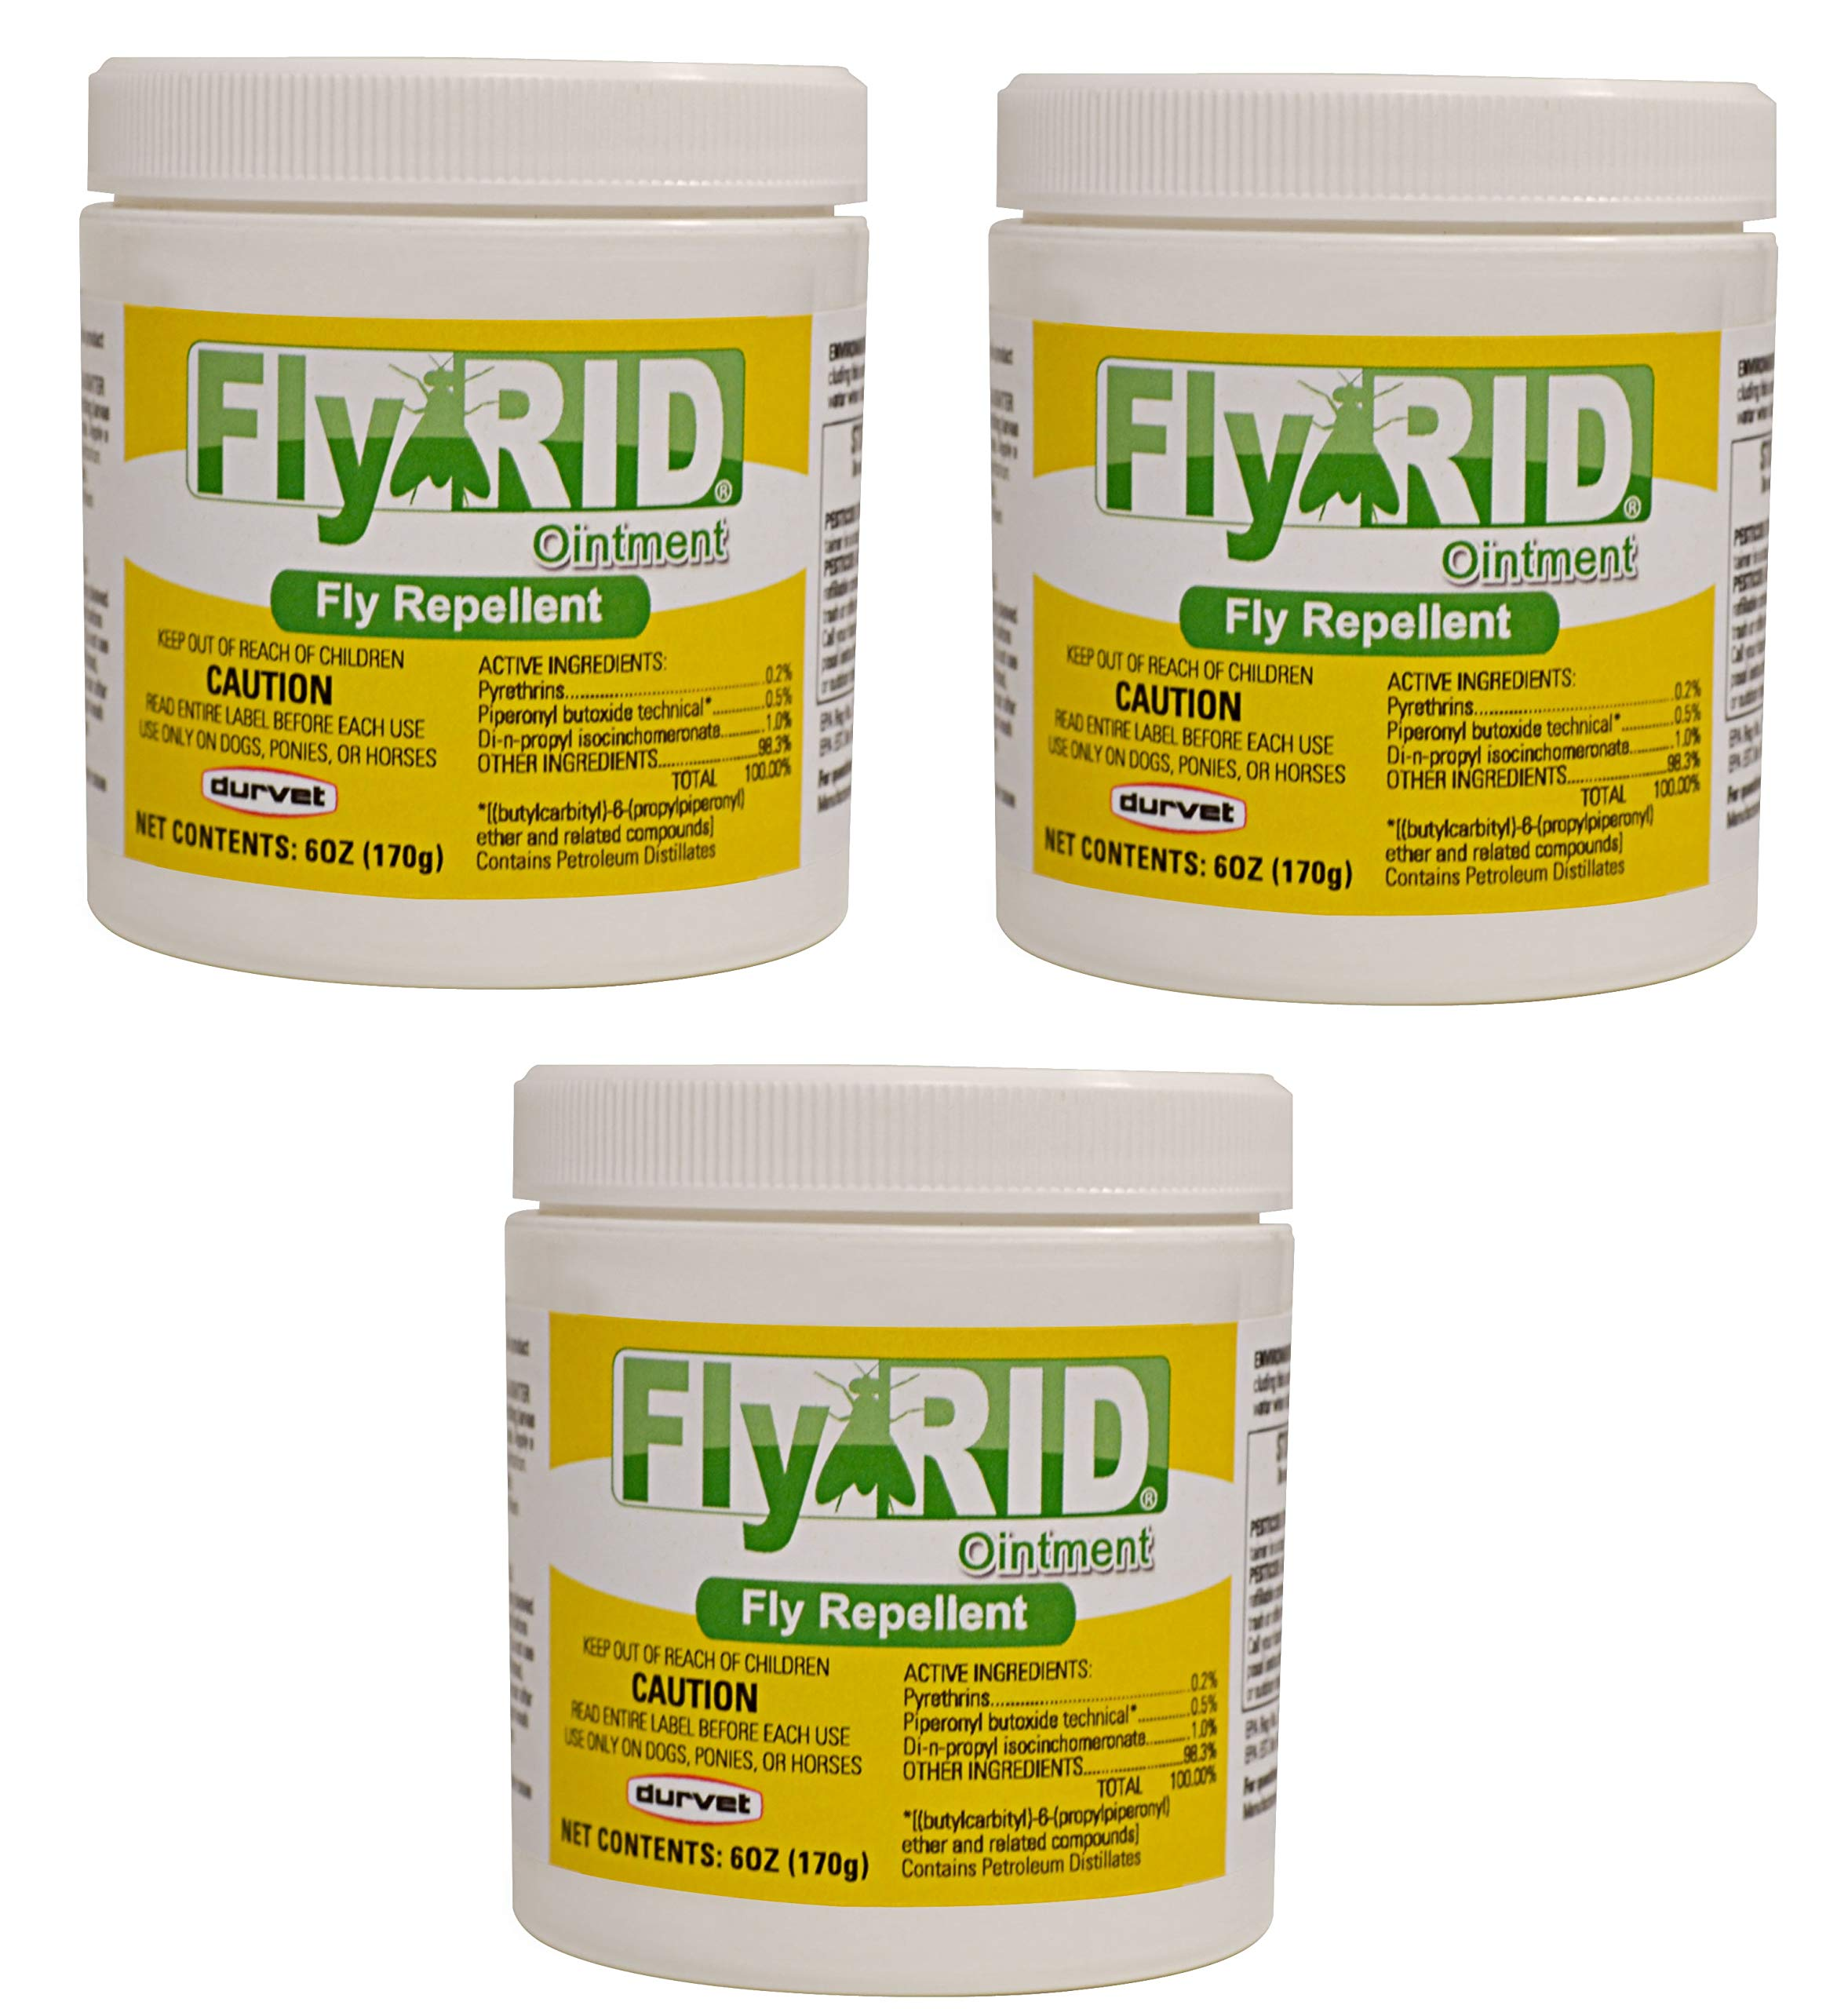 Durvet Fly Repellent Ointment Fly Rid Clear 6oz for Dogs and Horses (3 Packs)